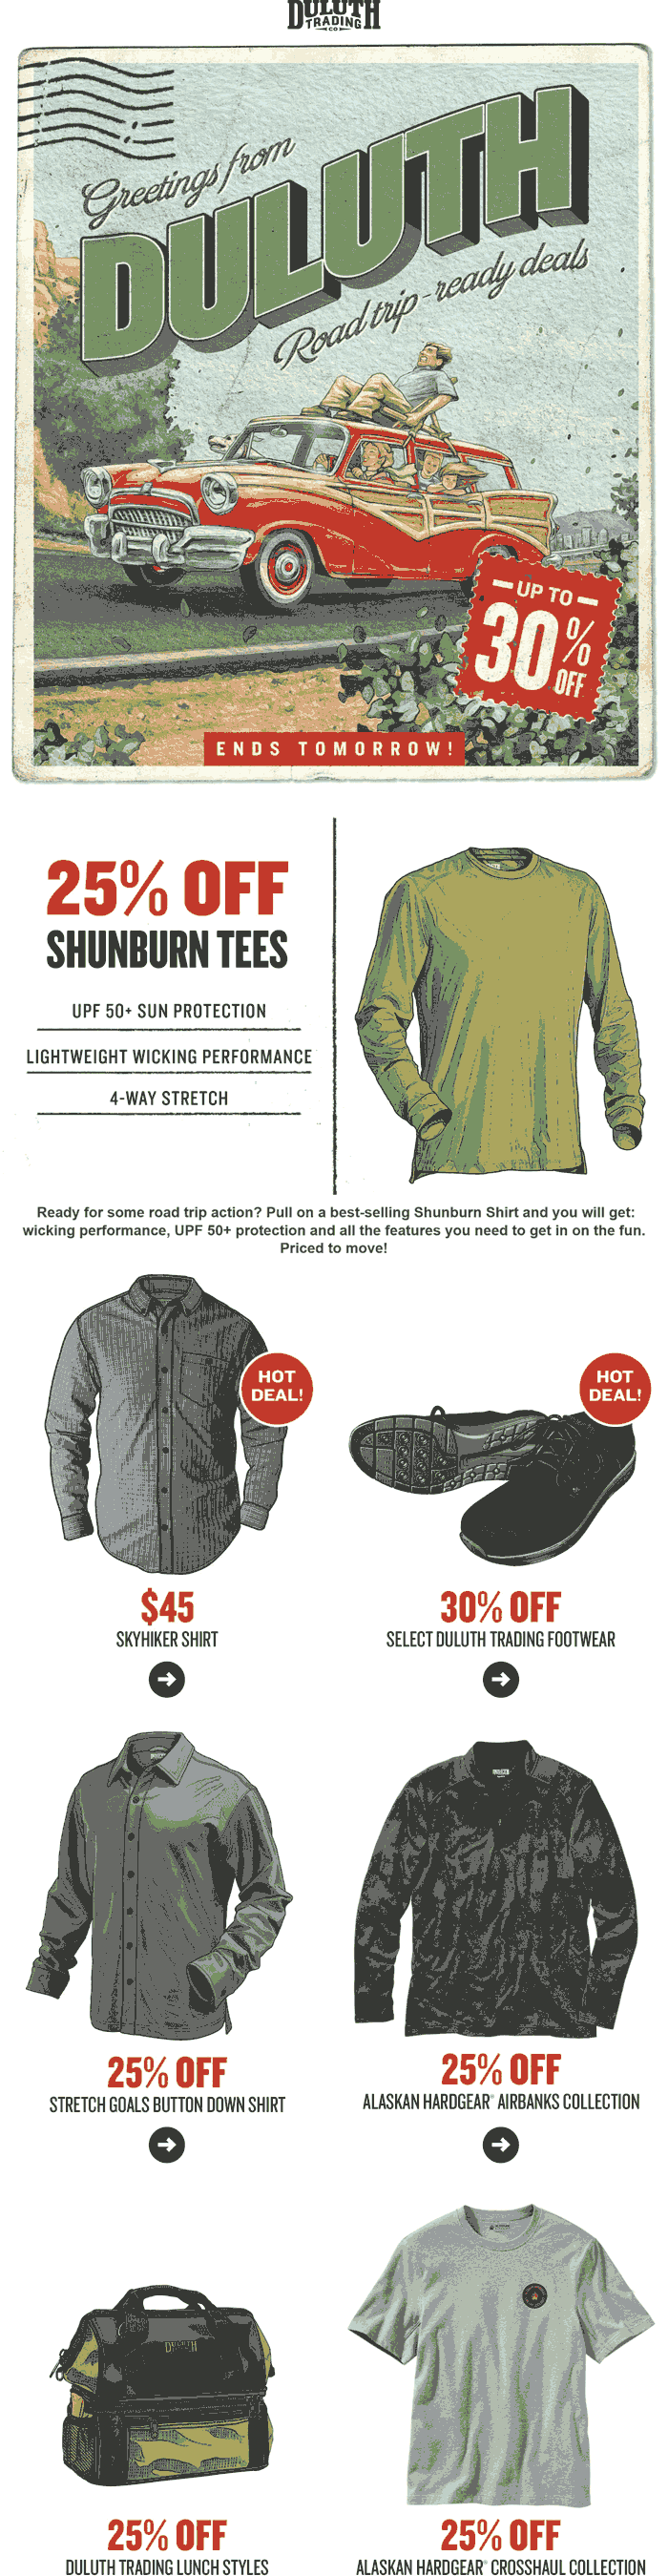 Duluth Trading Co stores Coupon  25% off Summer shirts at Duluth Trading Co #duluthtradingco